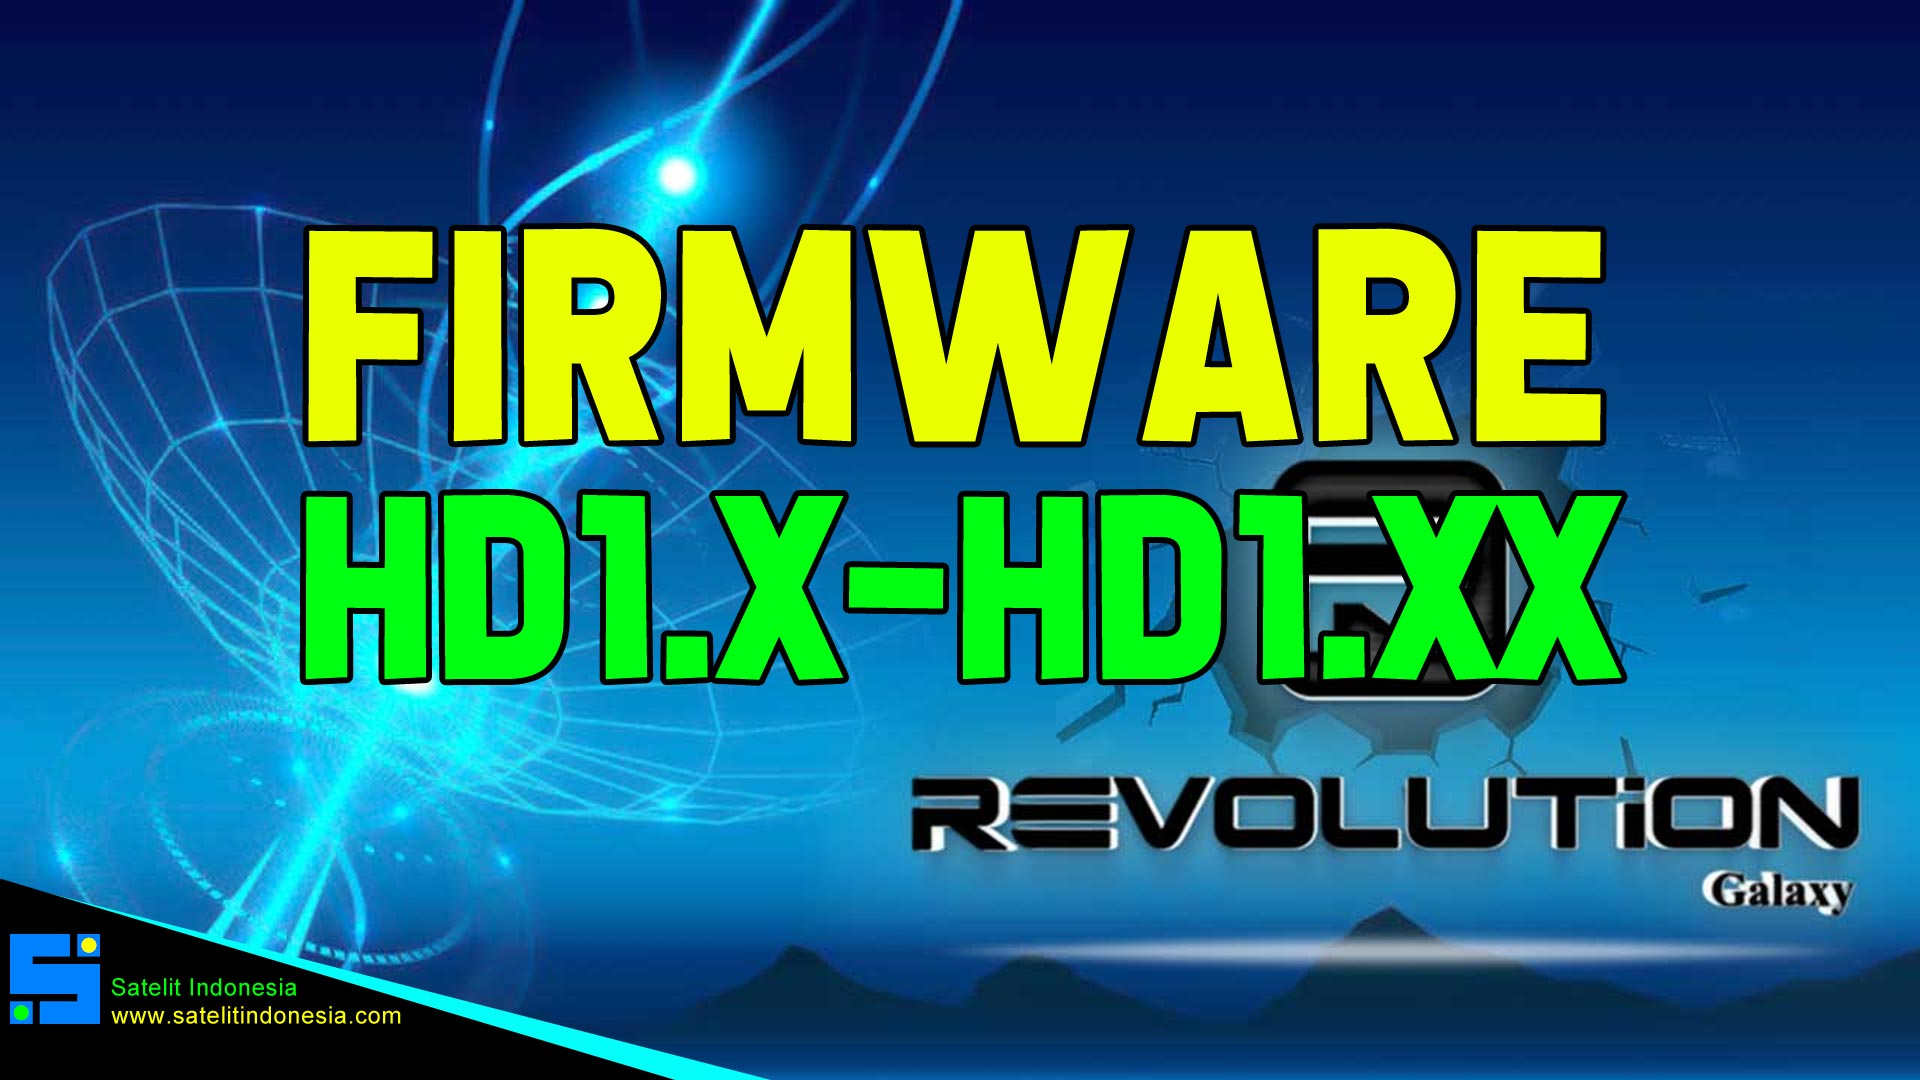 Download Software Revolution Galaxy HD1X HD1XX Firmware Receiver